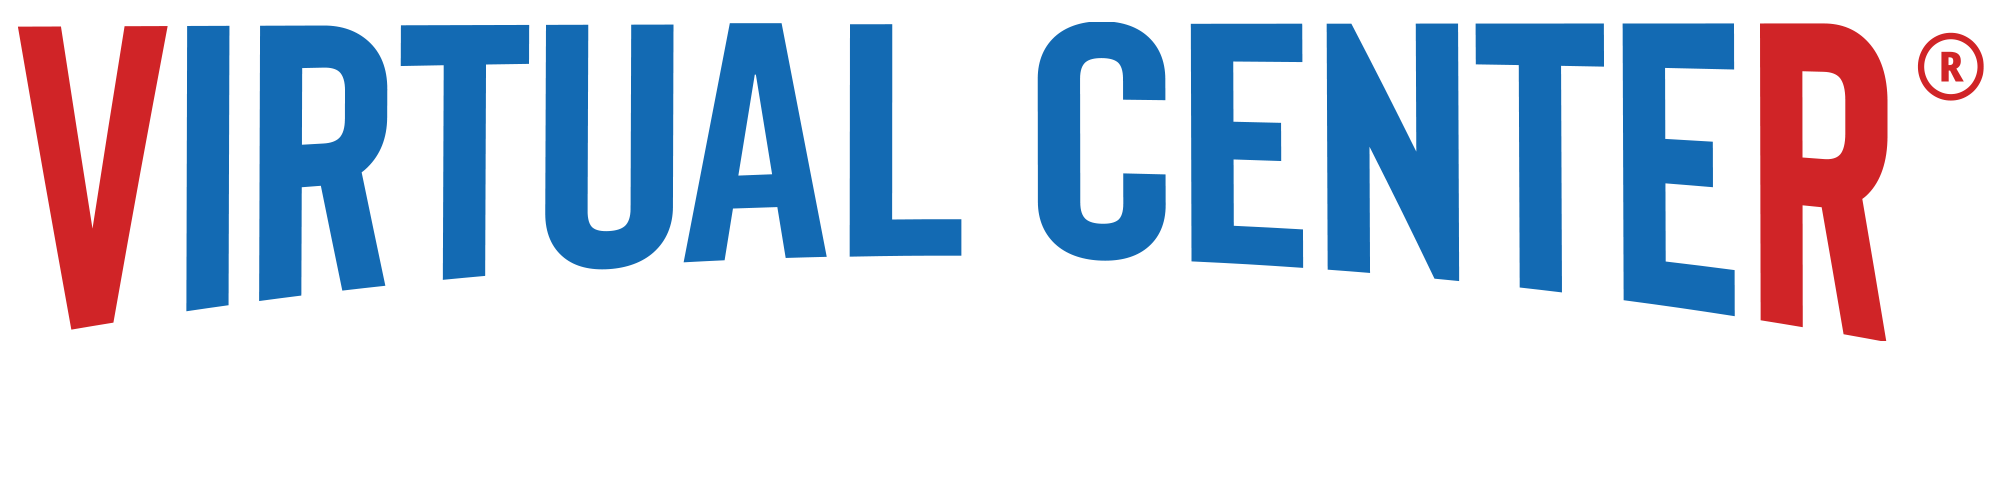 Virtual Center Troyes